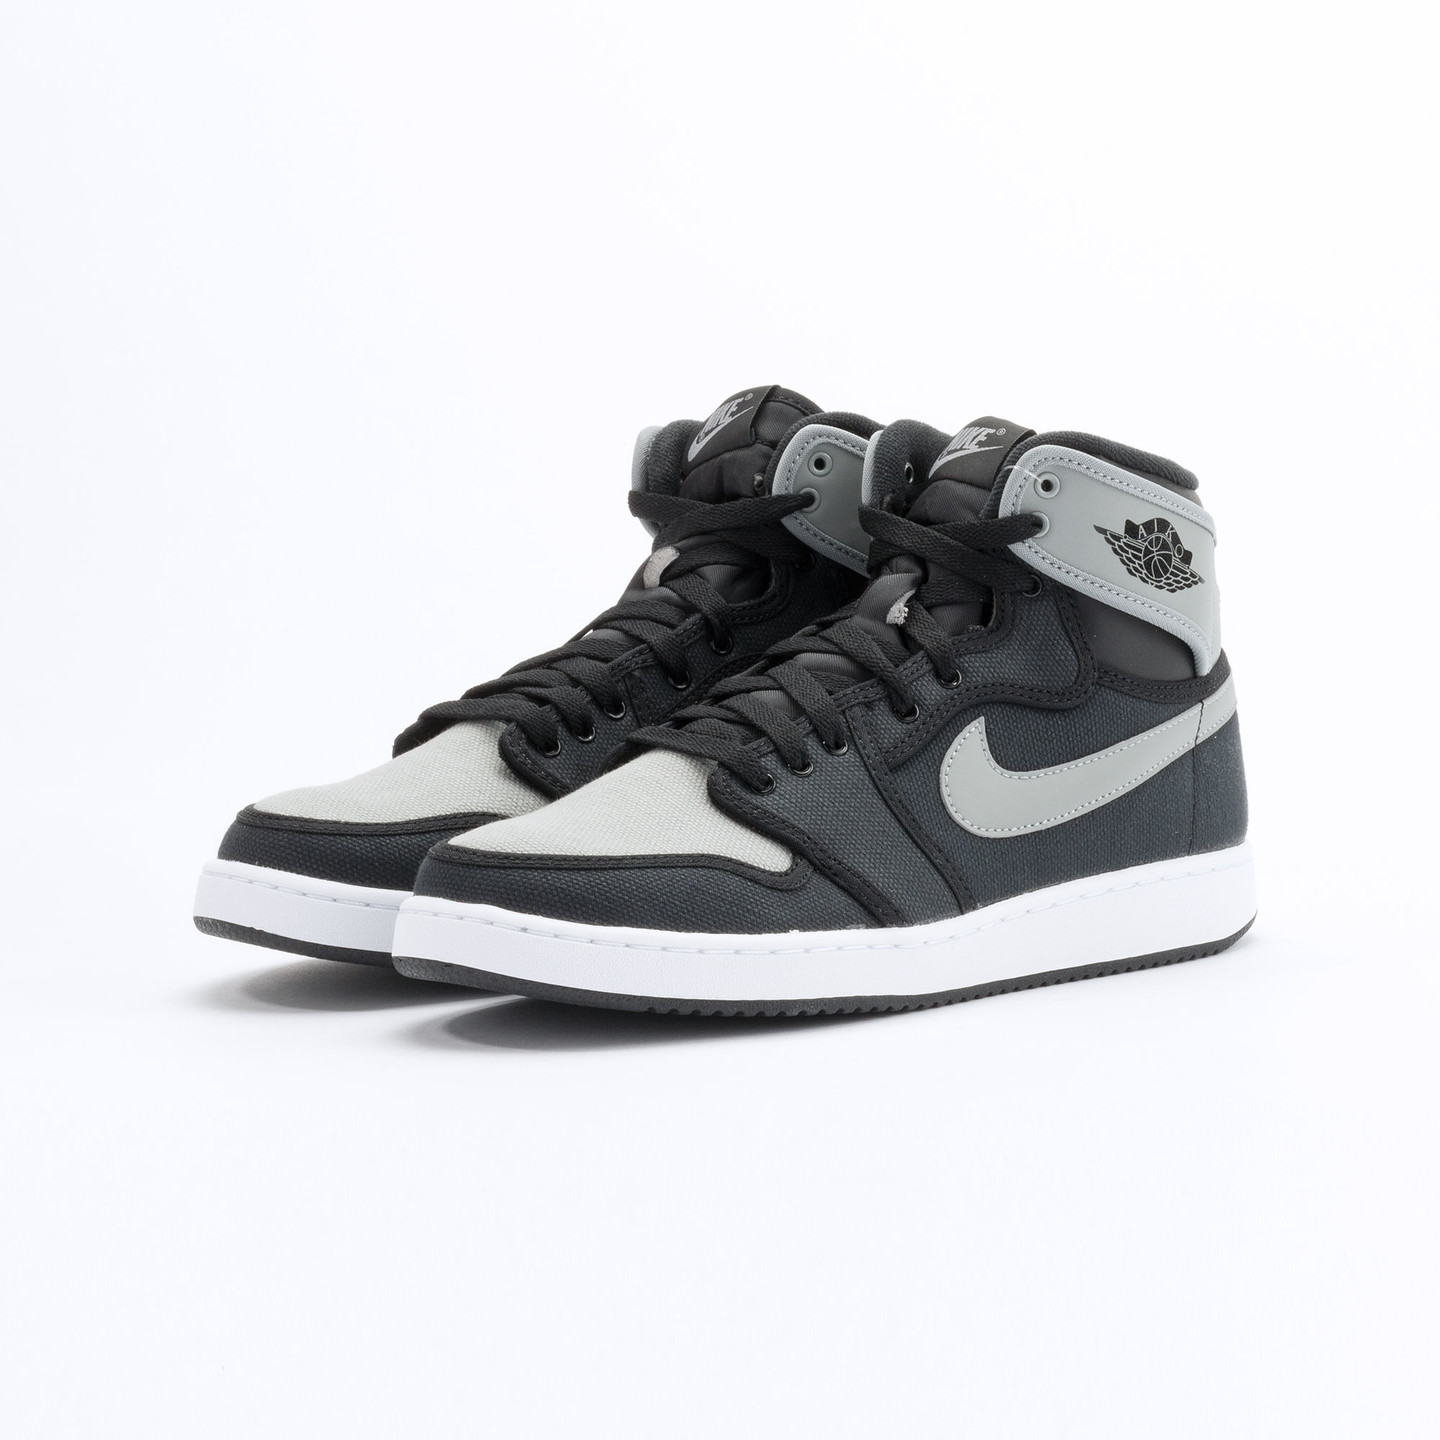 Nike Air Jordan 1 KO High OG Black / Shadow Grey / White 638471-003-44